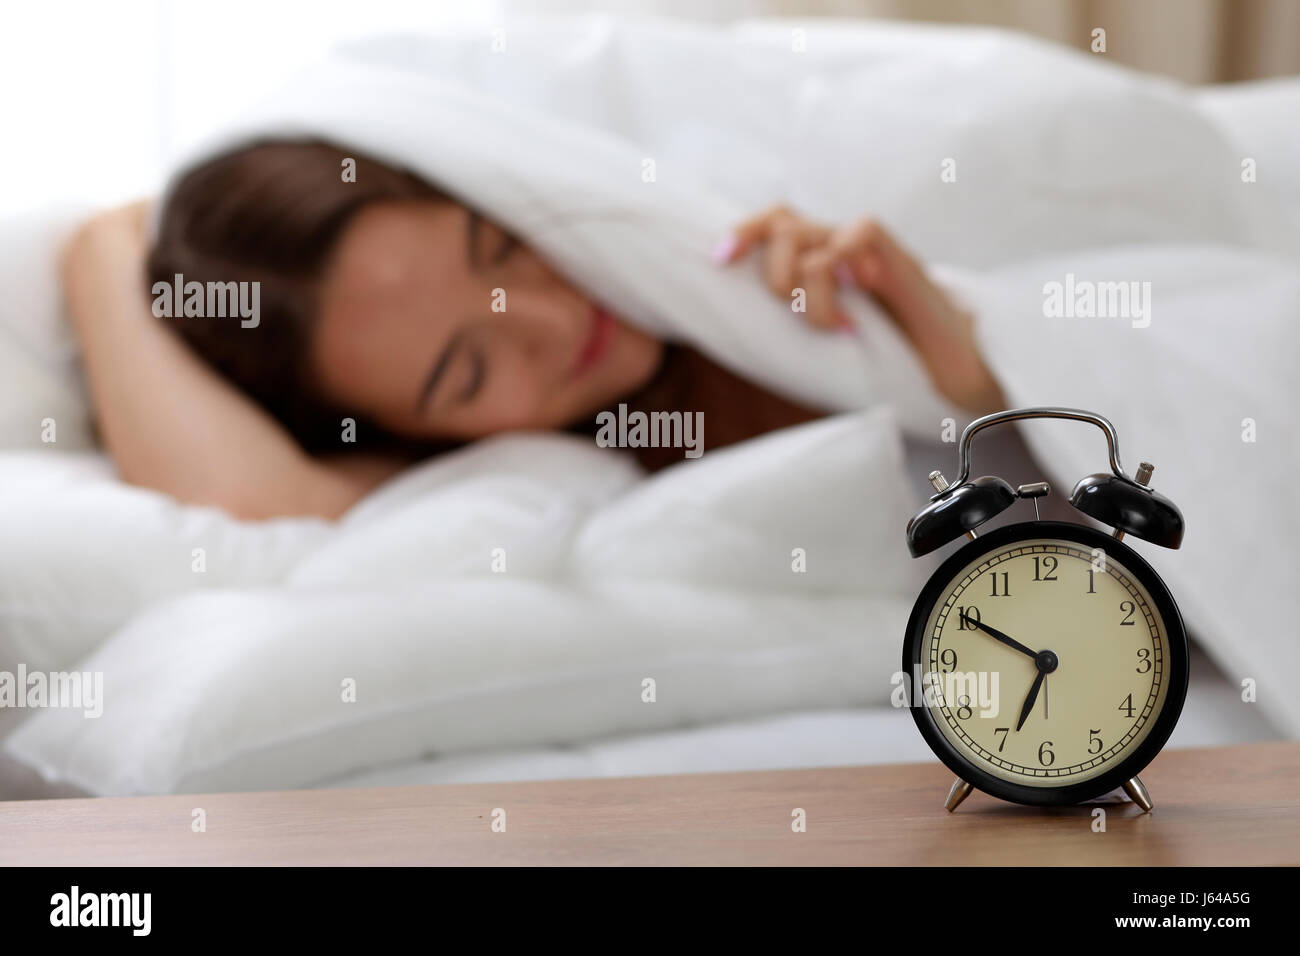 Best Alarm Bedside - alarm-clock-standing-on-bedside-table-has-already-rung-early-morning-J64A5G  Image_488322.jpg